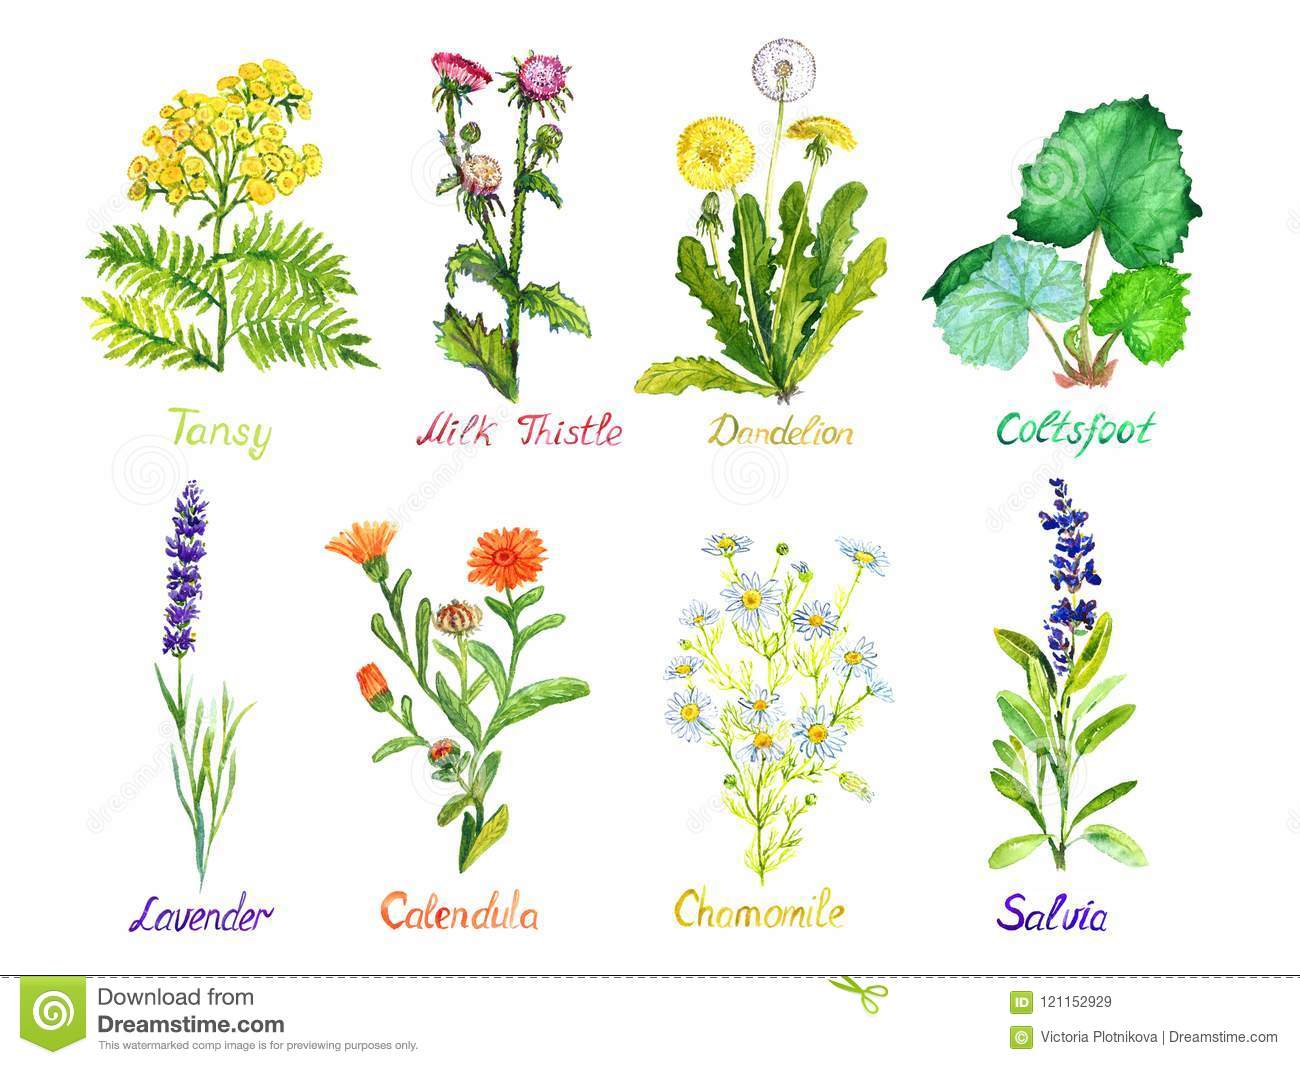 Tansy, milk thistle, dandelion, coltsfoot, lavender, calendula, chamomile and salvia, medical wild flowers collection, isolated